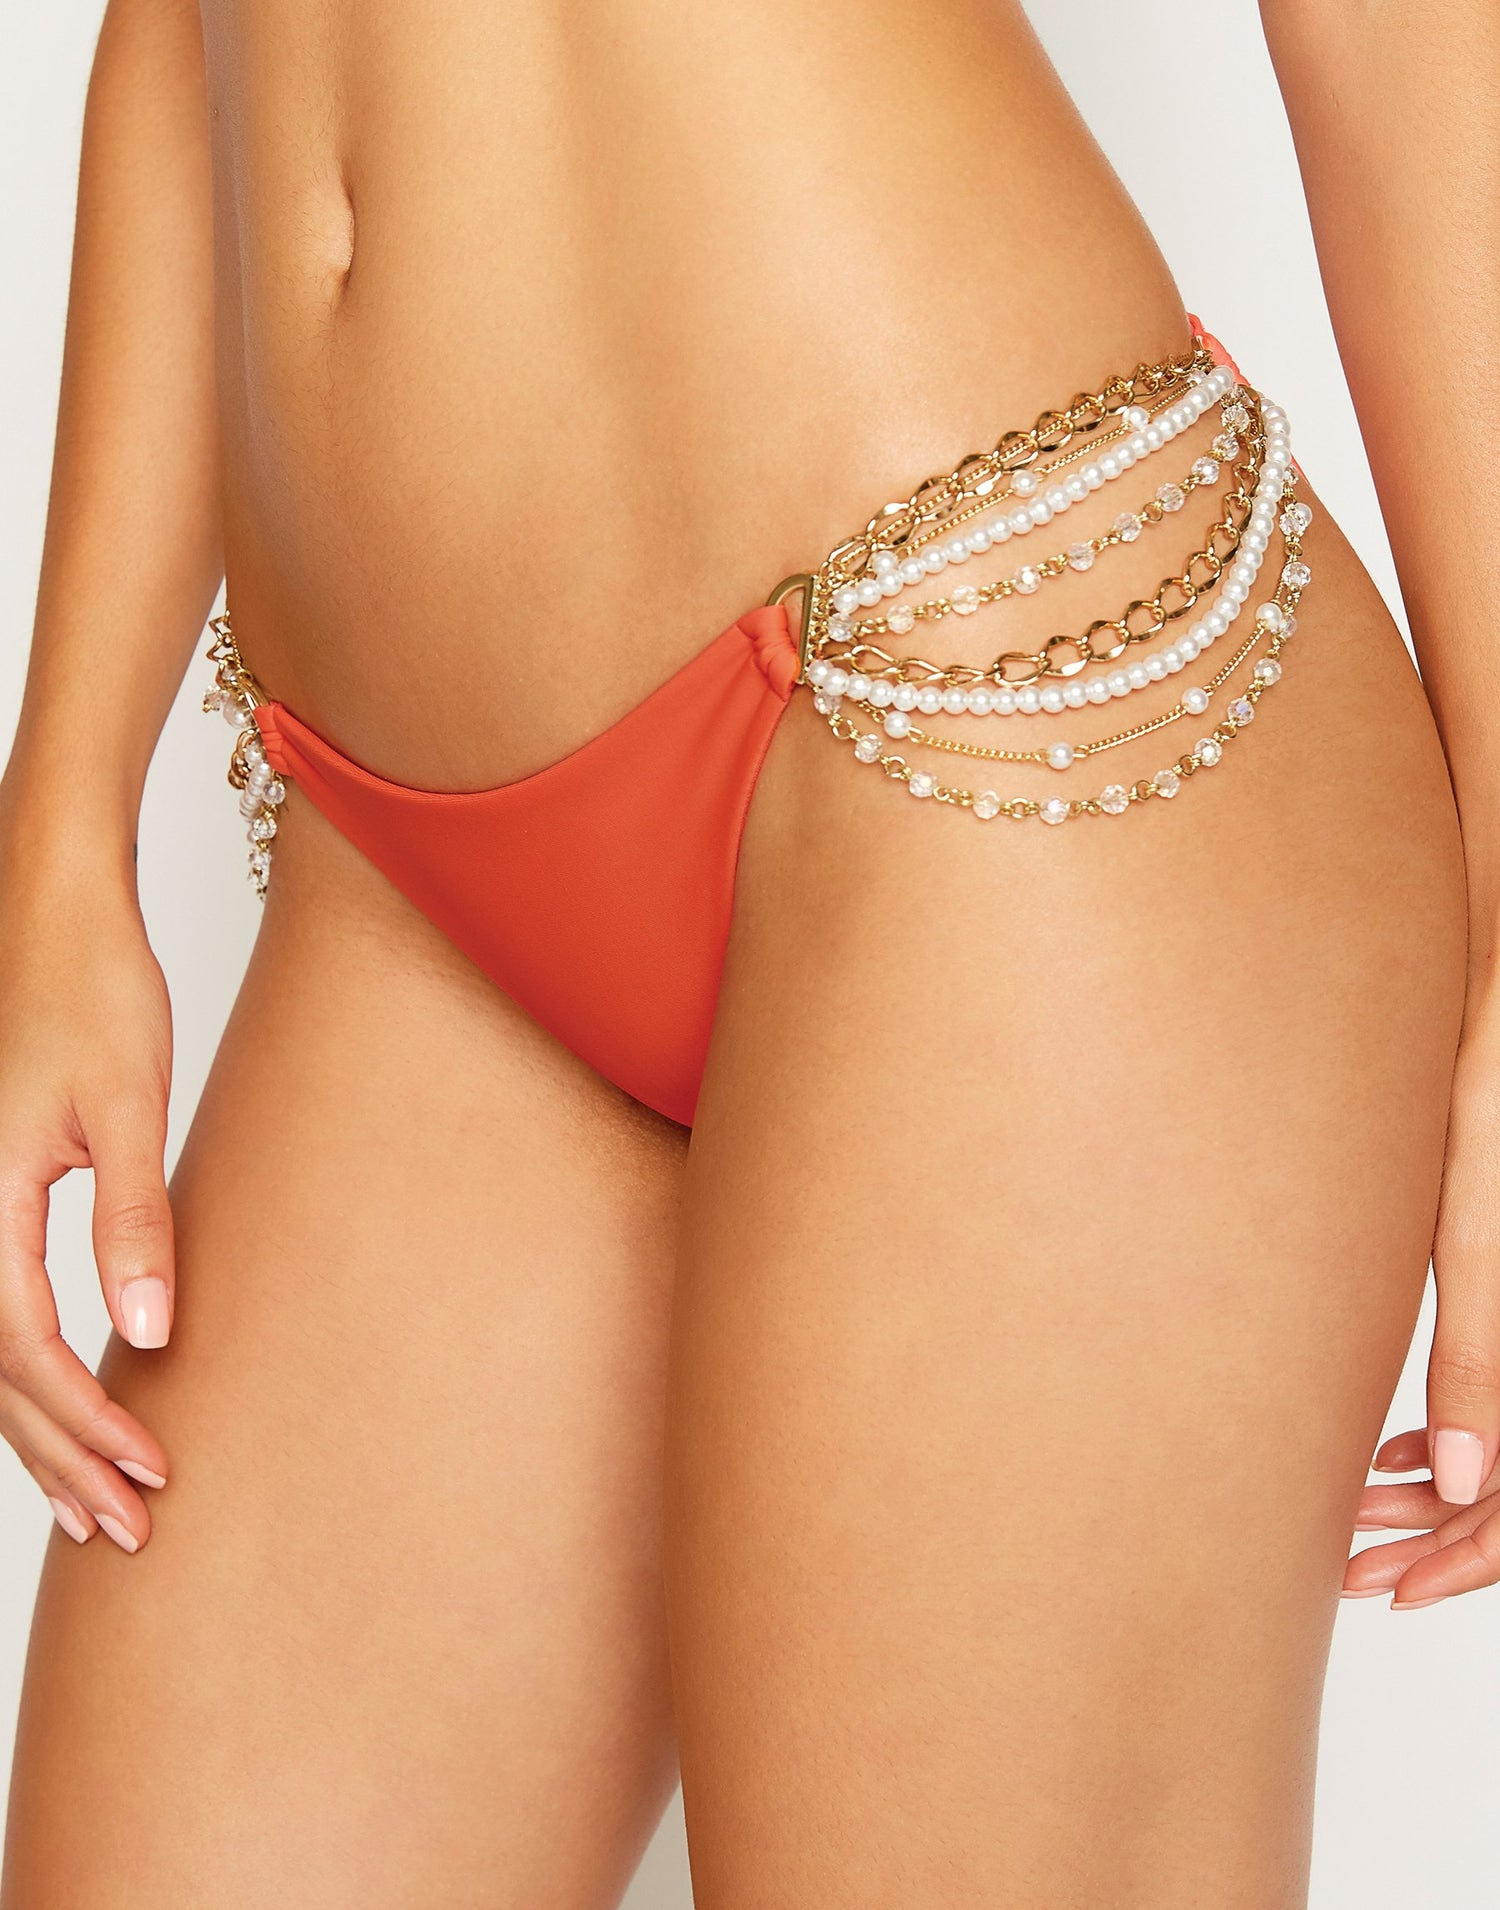 Pretty in Pearls Skimpy Bikini Bottom in Poppy Red with Pearl Hardware - detail view